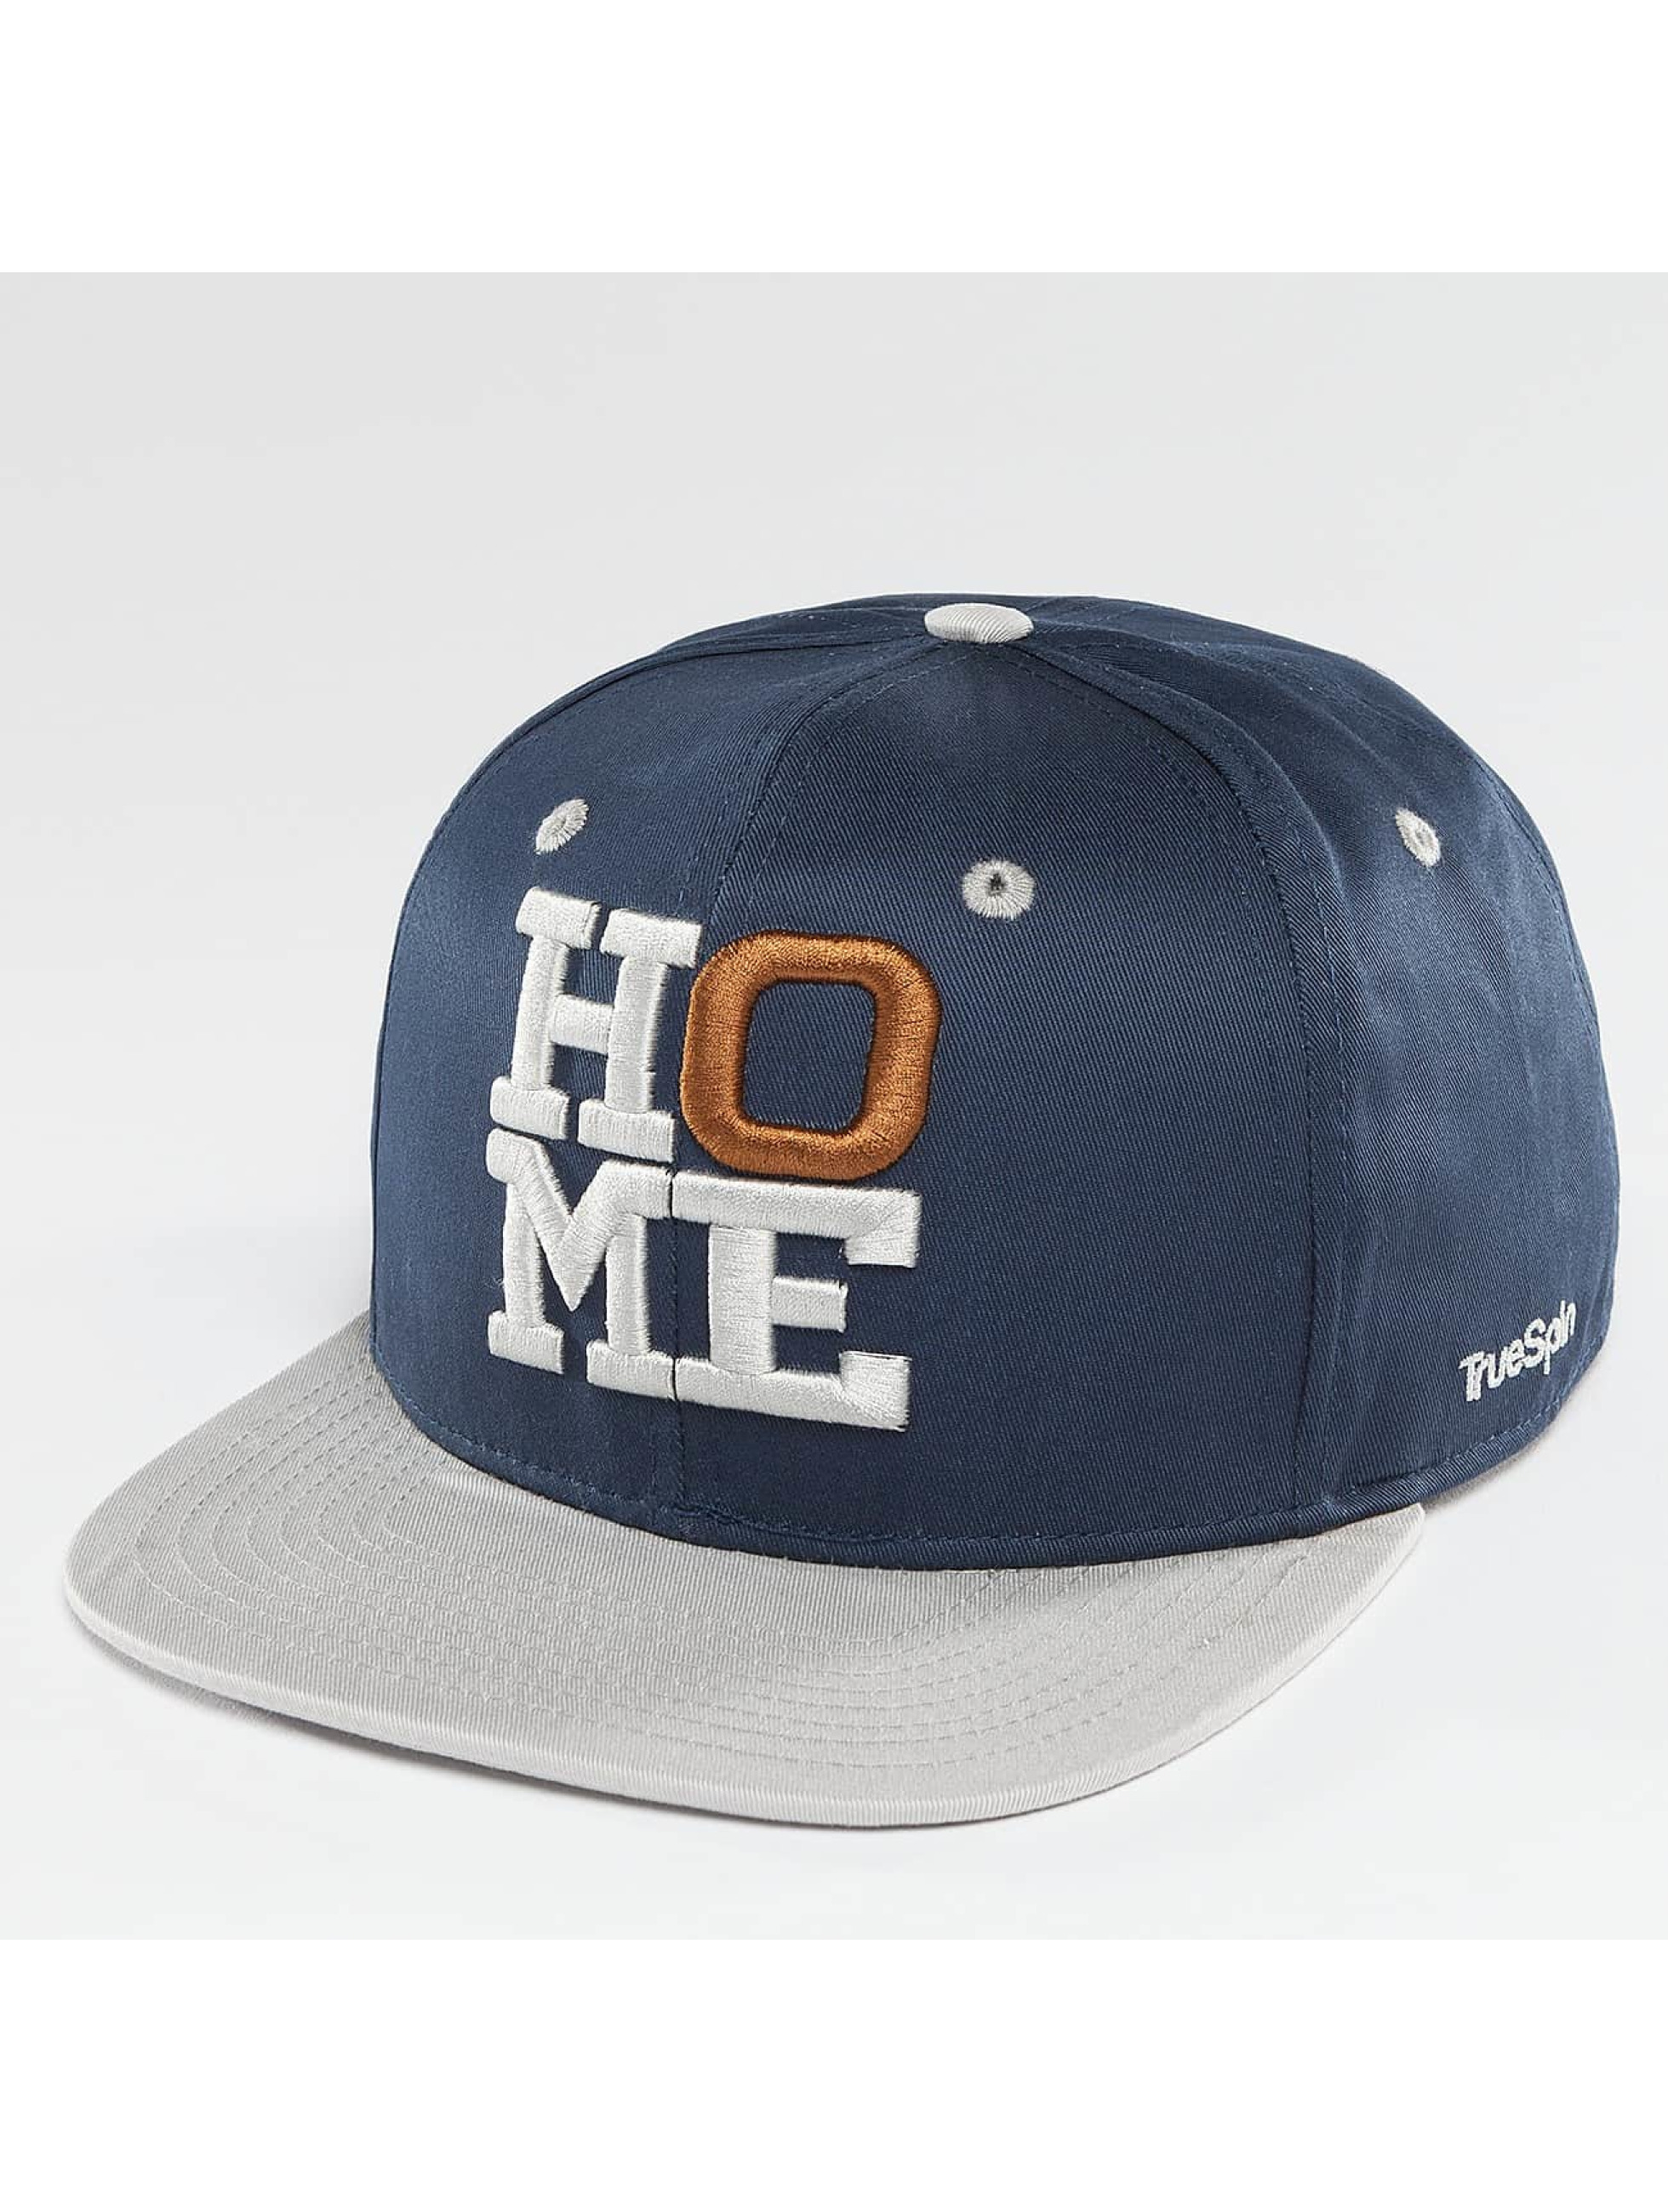 TrueSpin Gorra Snapback 4 Letters Home azul